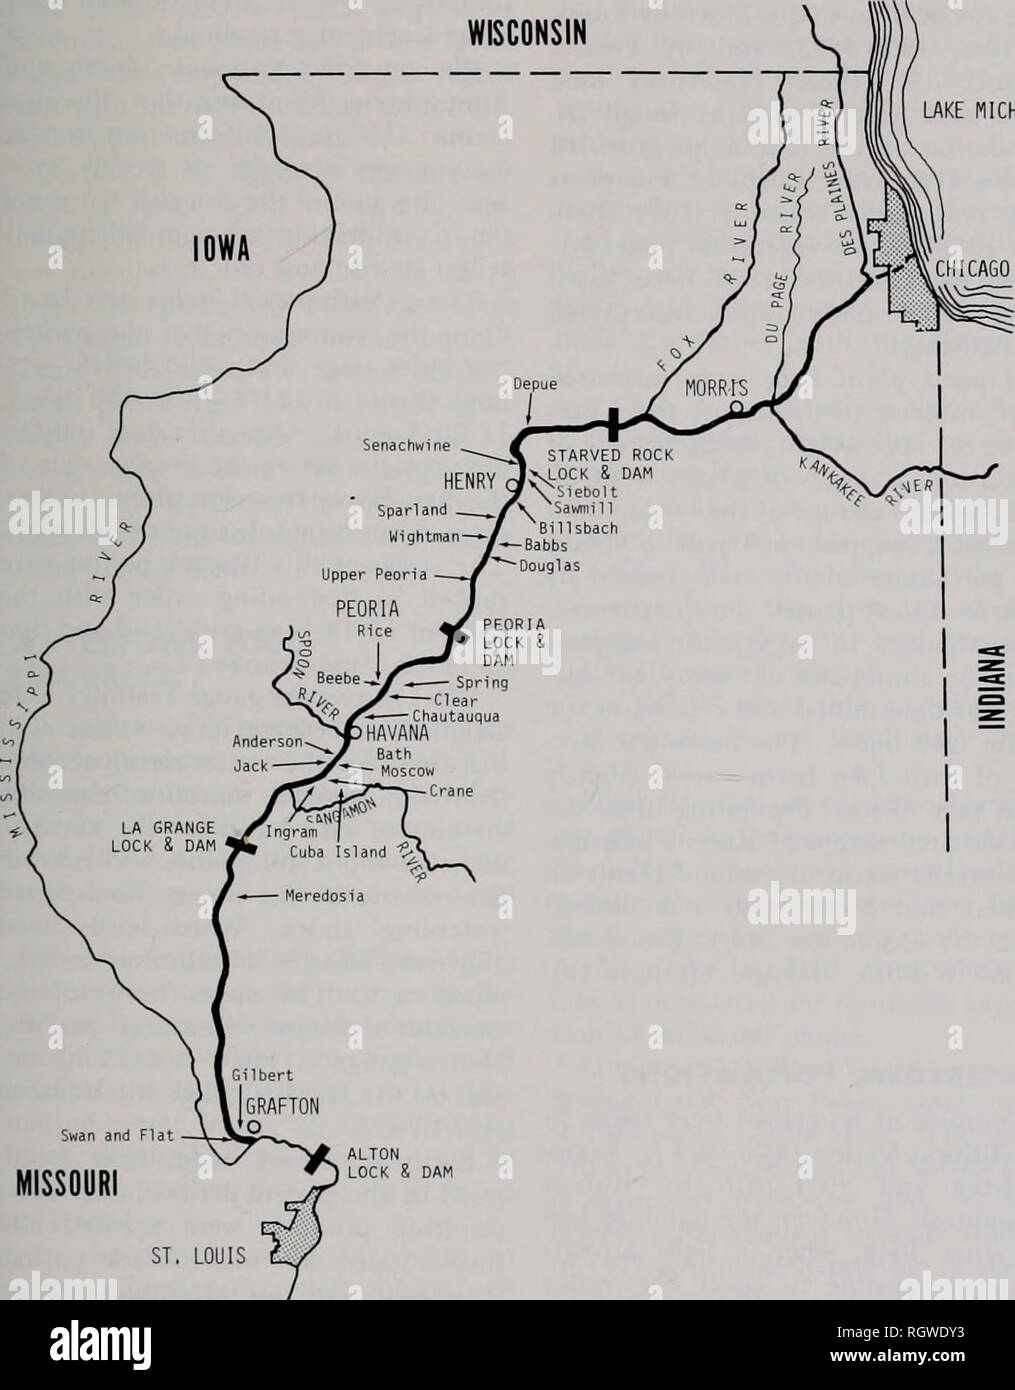 Image of: Bulletin Natural History Natural History Aug 1979 Bellrose Et Al Waterfowl And The Changing Illinois Valley 7 Wooded Vegetation Line On The U S Series Of The Woemiann 1902 1904 Army Corps Of Engineers